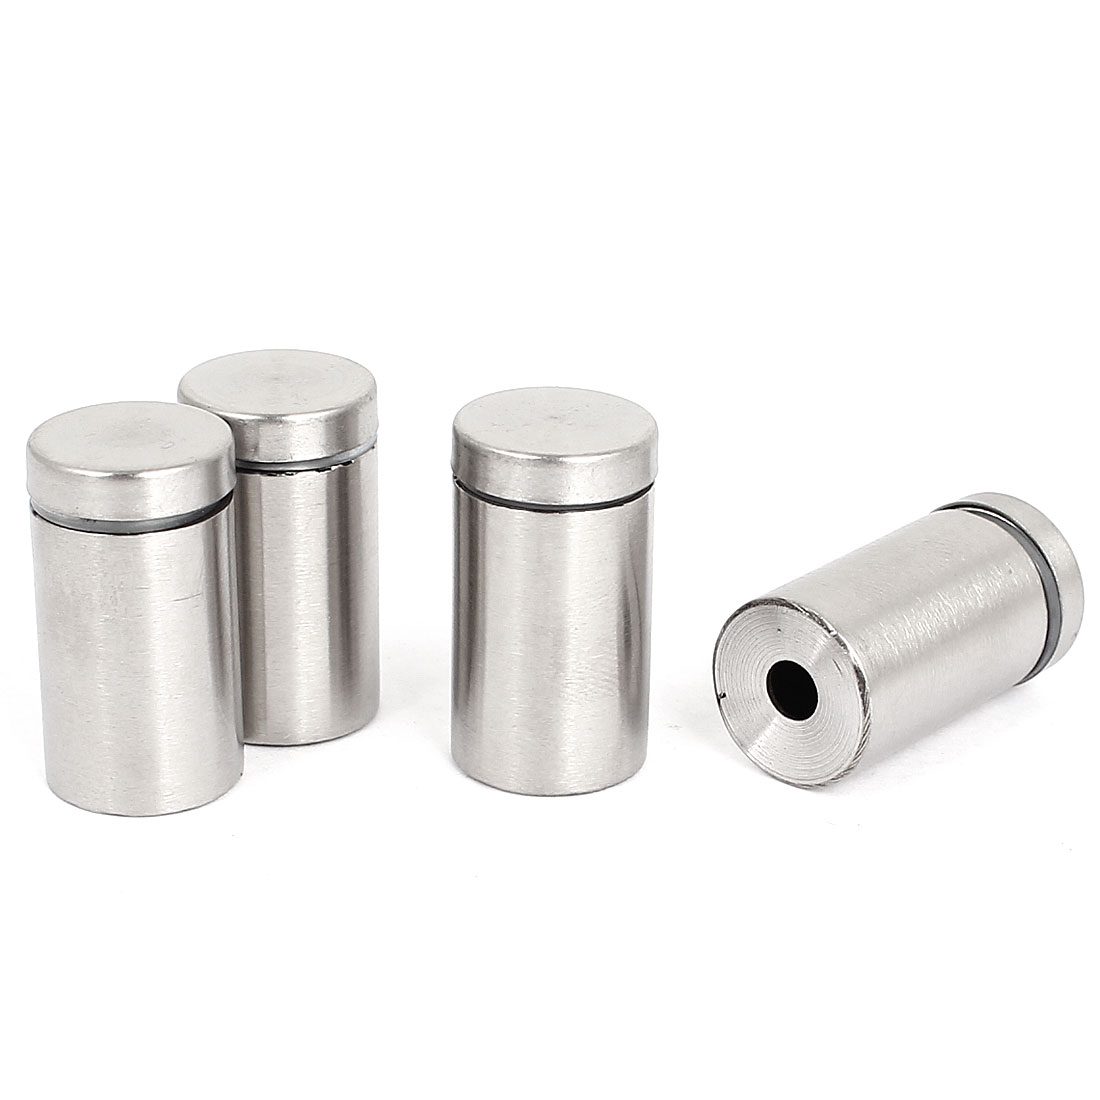 16mm x 30mm Stainless Steel Advertising Nails Glass Standoff Hardware 4 Pcs